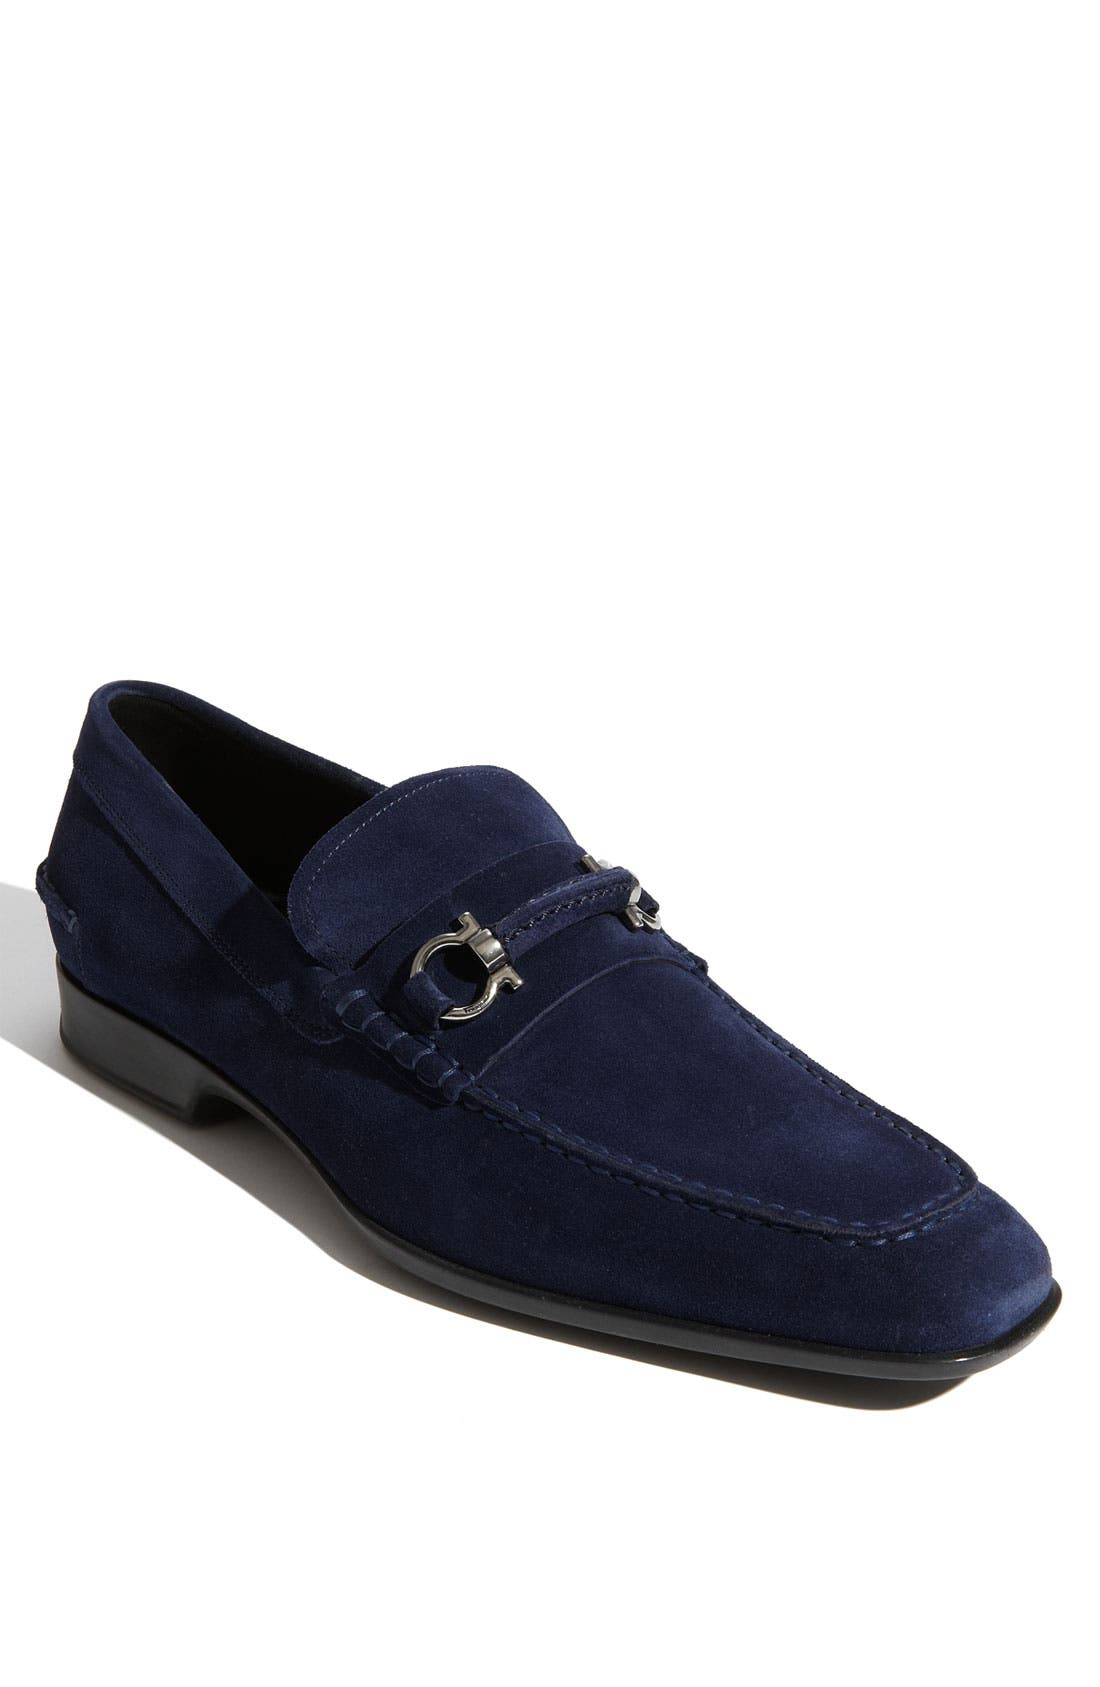 Main Image - Salvatore Ferragamo 'Cantino' Slip-On